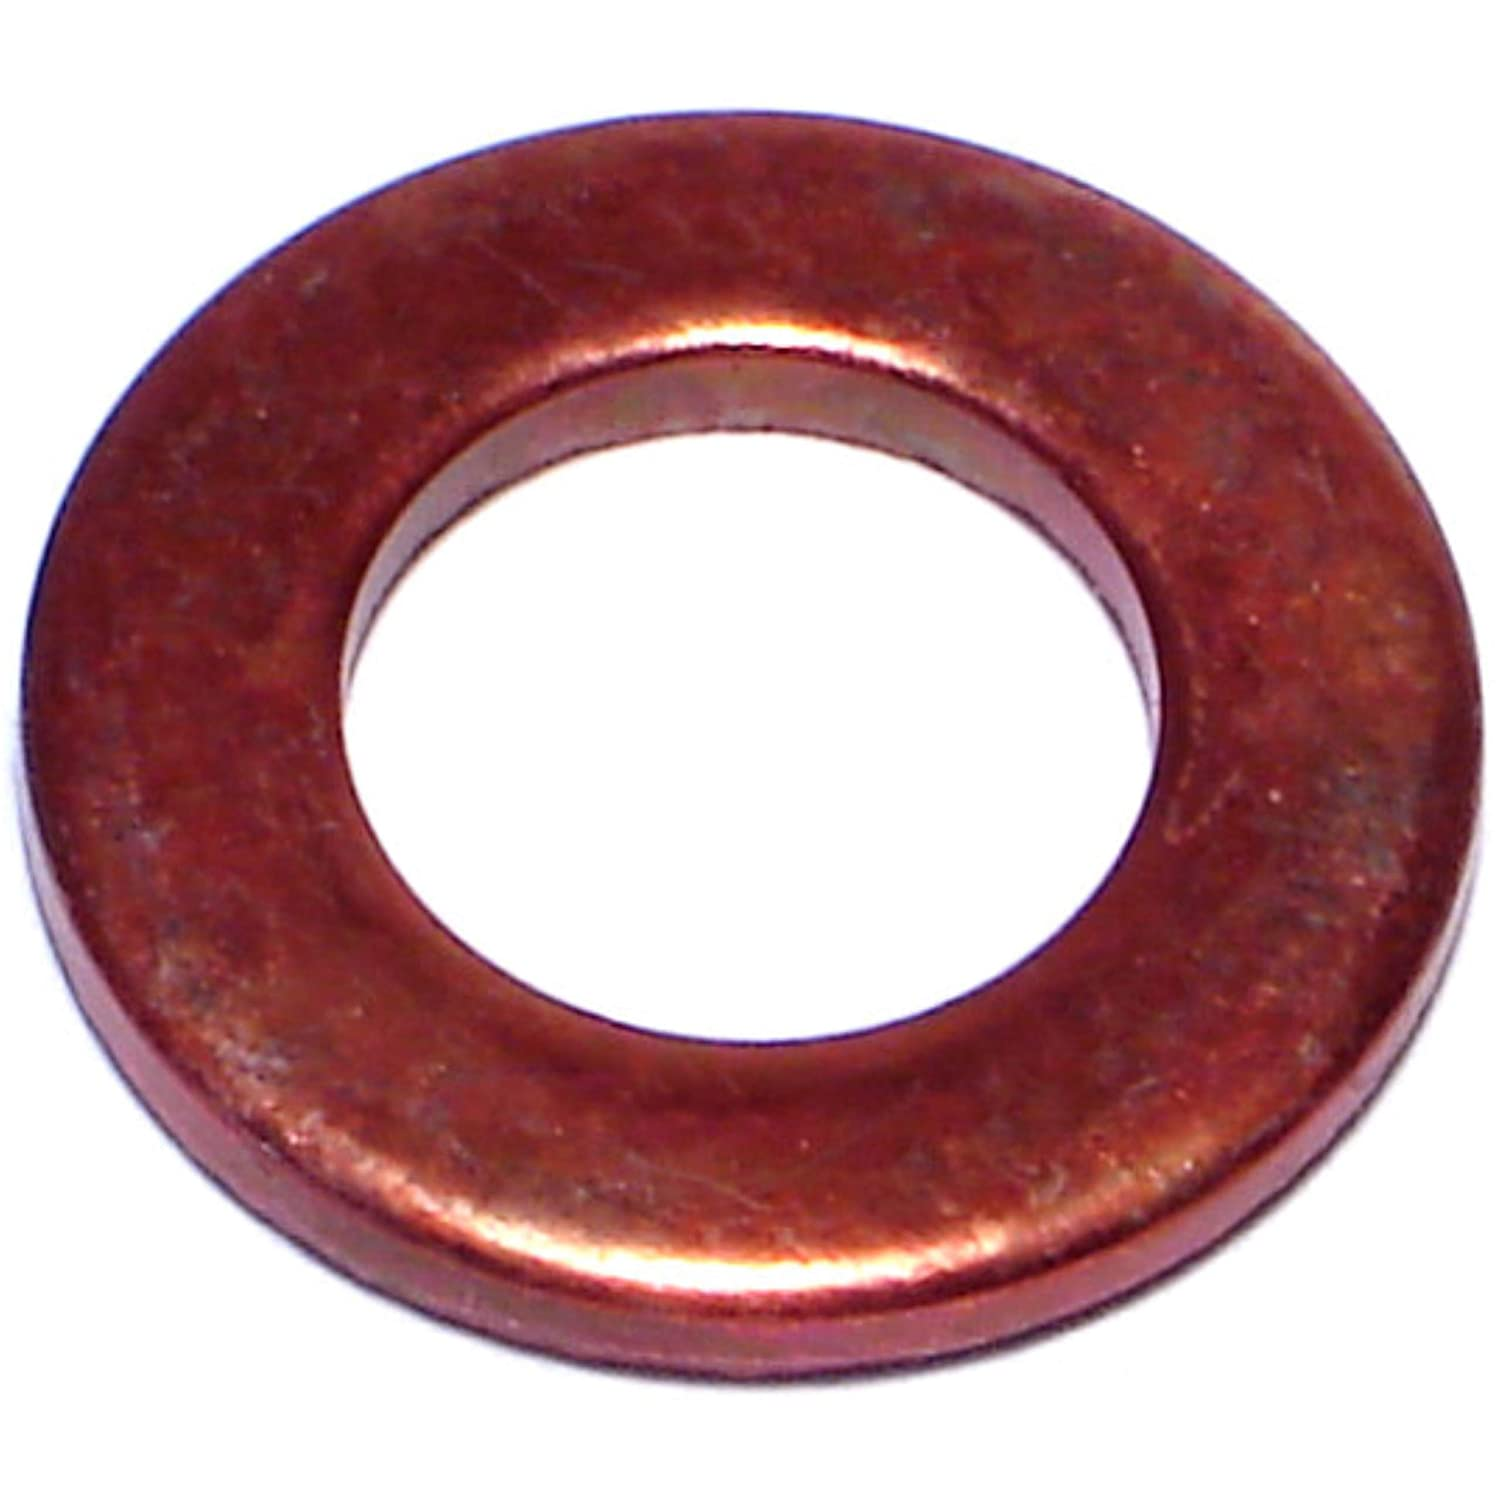 Hard-to-Find Fastener 014973387419 Class 8 Flat Washers 12mm Piece-411